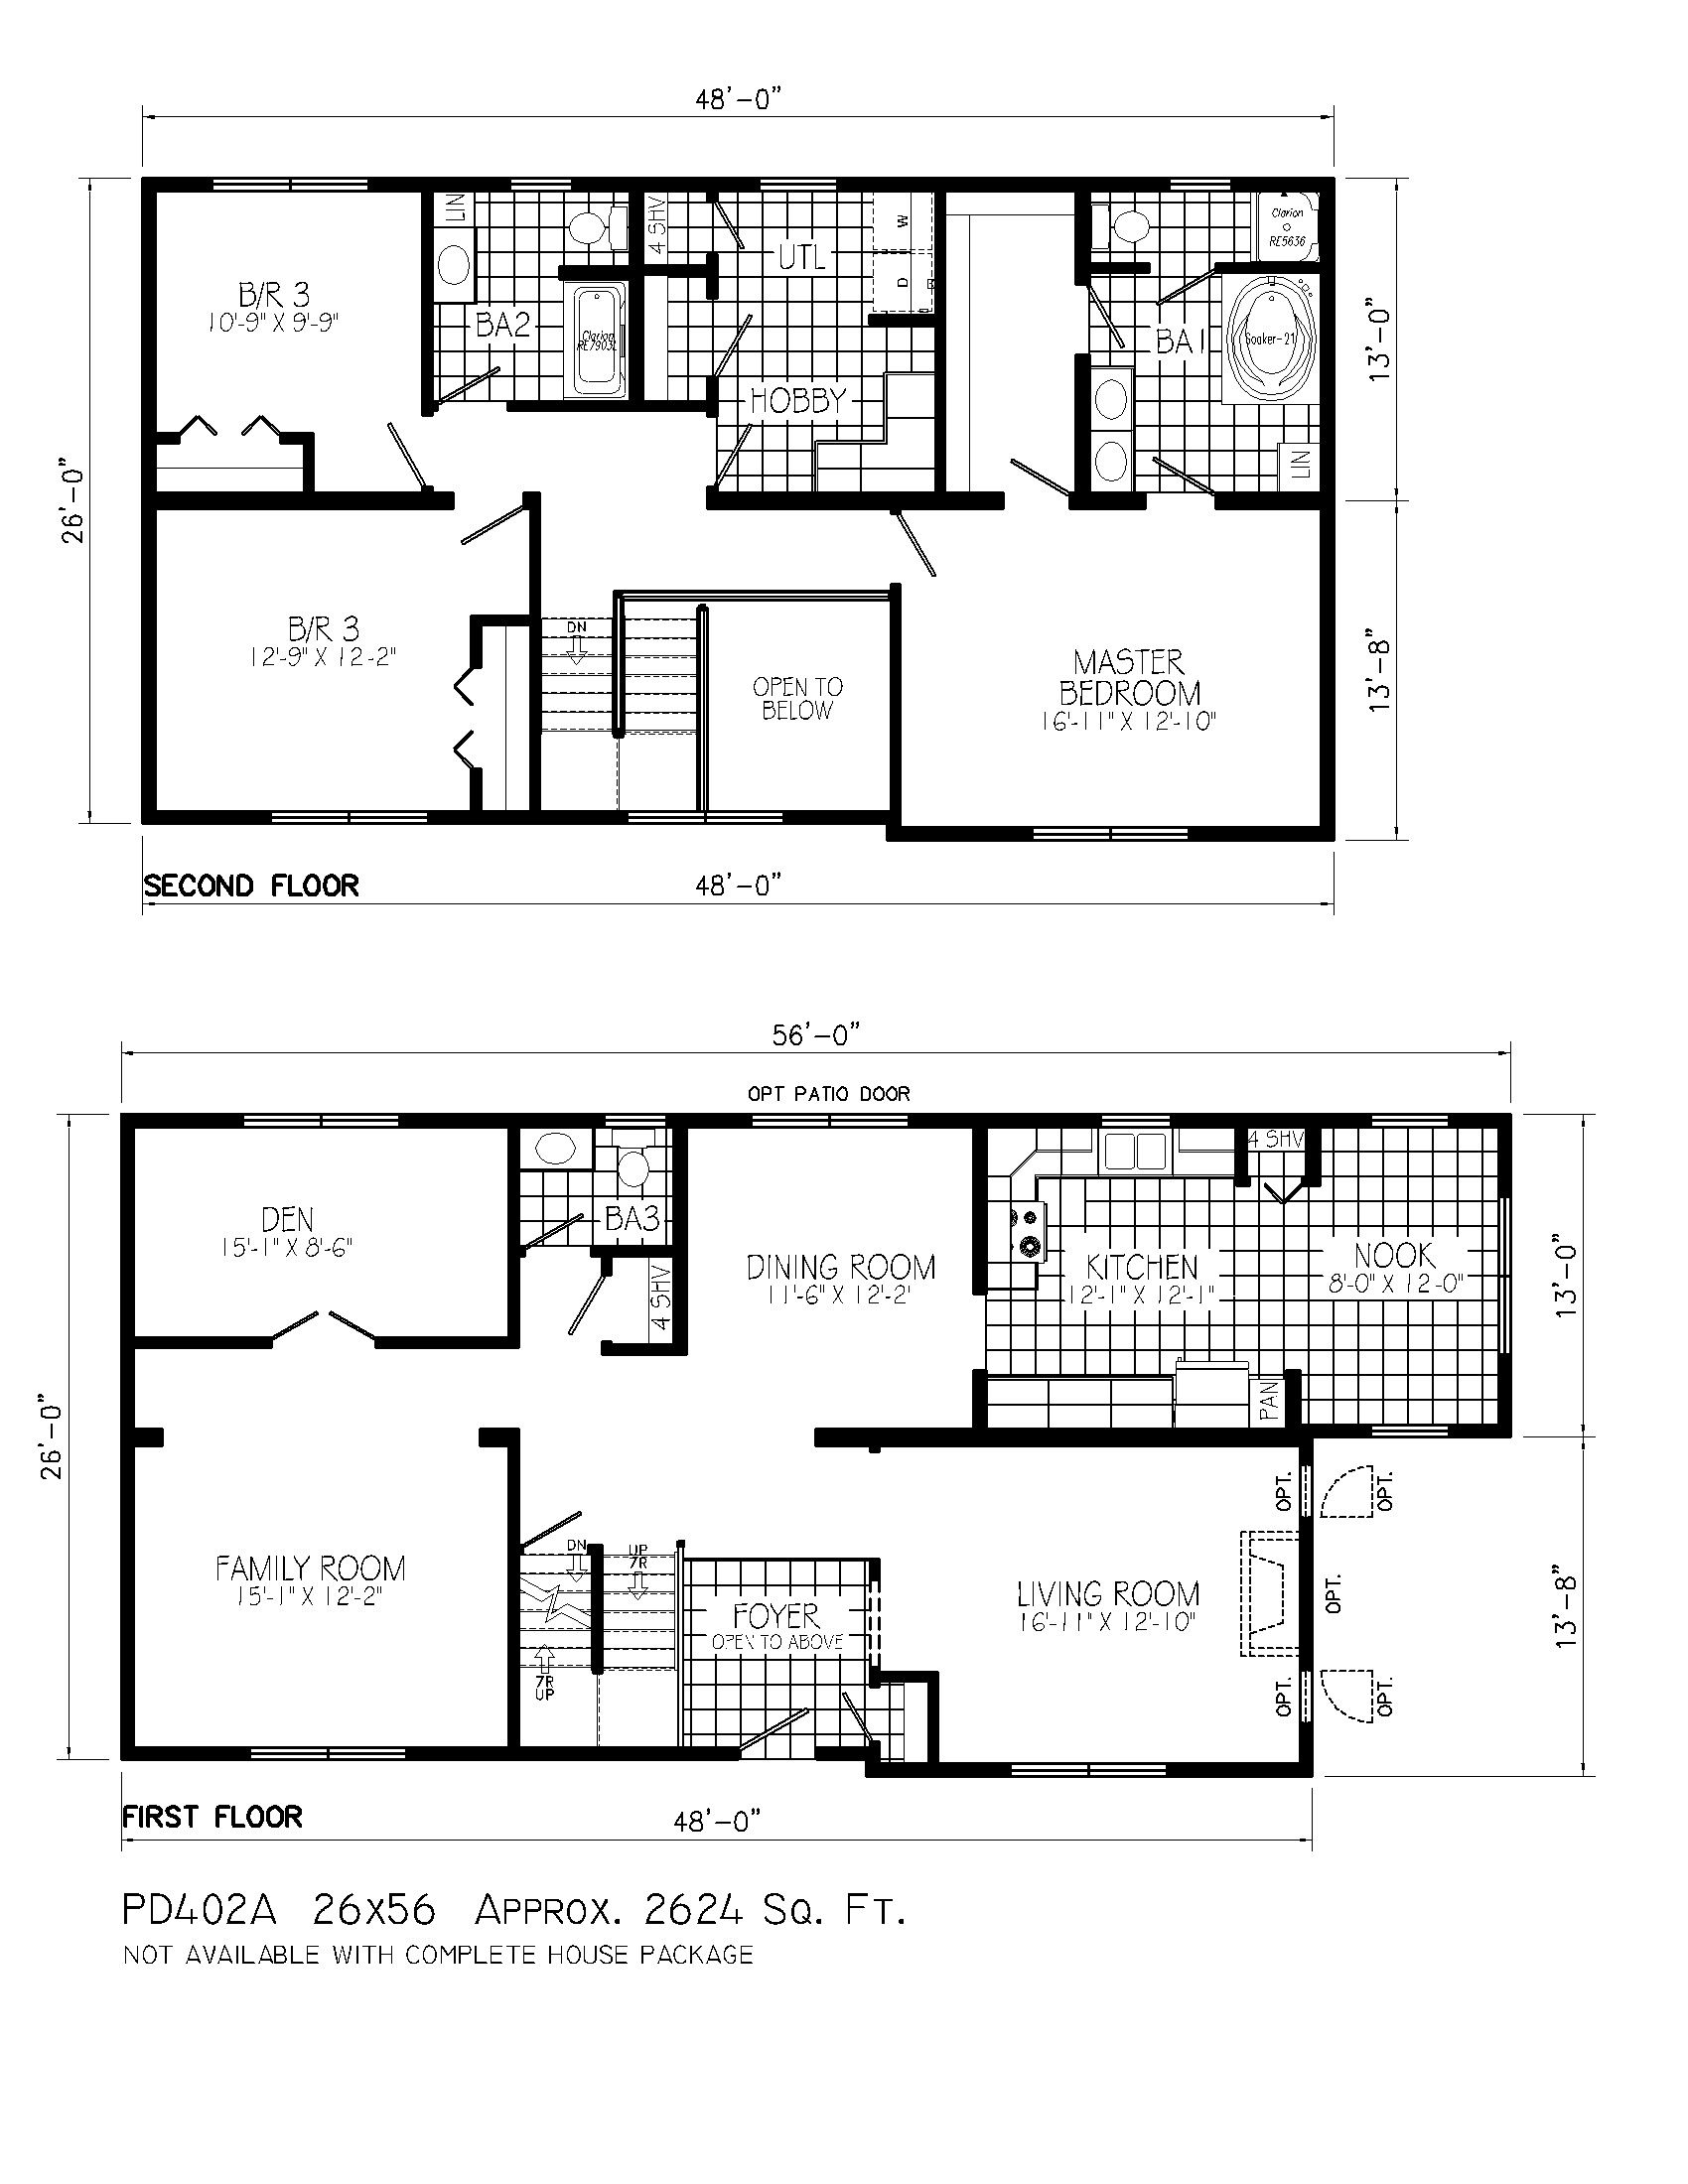 Small two story cabin floor plans with house under 1000 sq for Two story house layout design